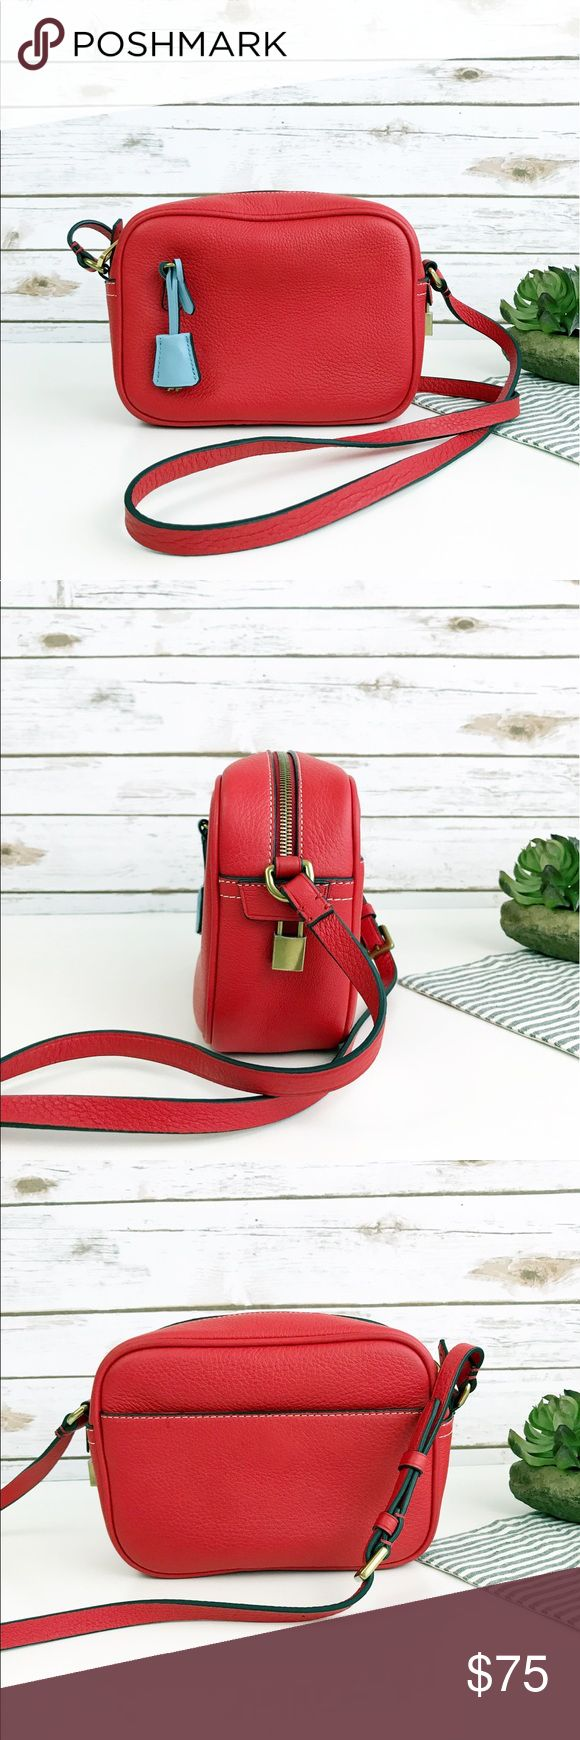 """J Crew Signet Bag in Italian Leather Leather Crossbody with zip closure and colorful leather key fob. Inside pocket. Dimensions: 6 1/8""""H x 8 3/8""""w x 2 3/4""""d. Adjustable strap: 24"""". Used once, in excellent condition. Smoke-free, pet-free. J. Crew Bags Crossbody Bags"""